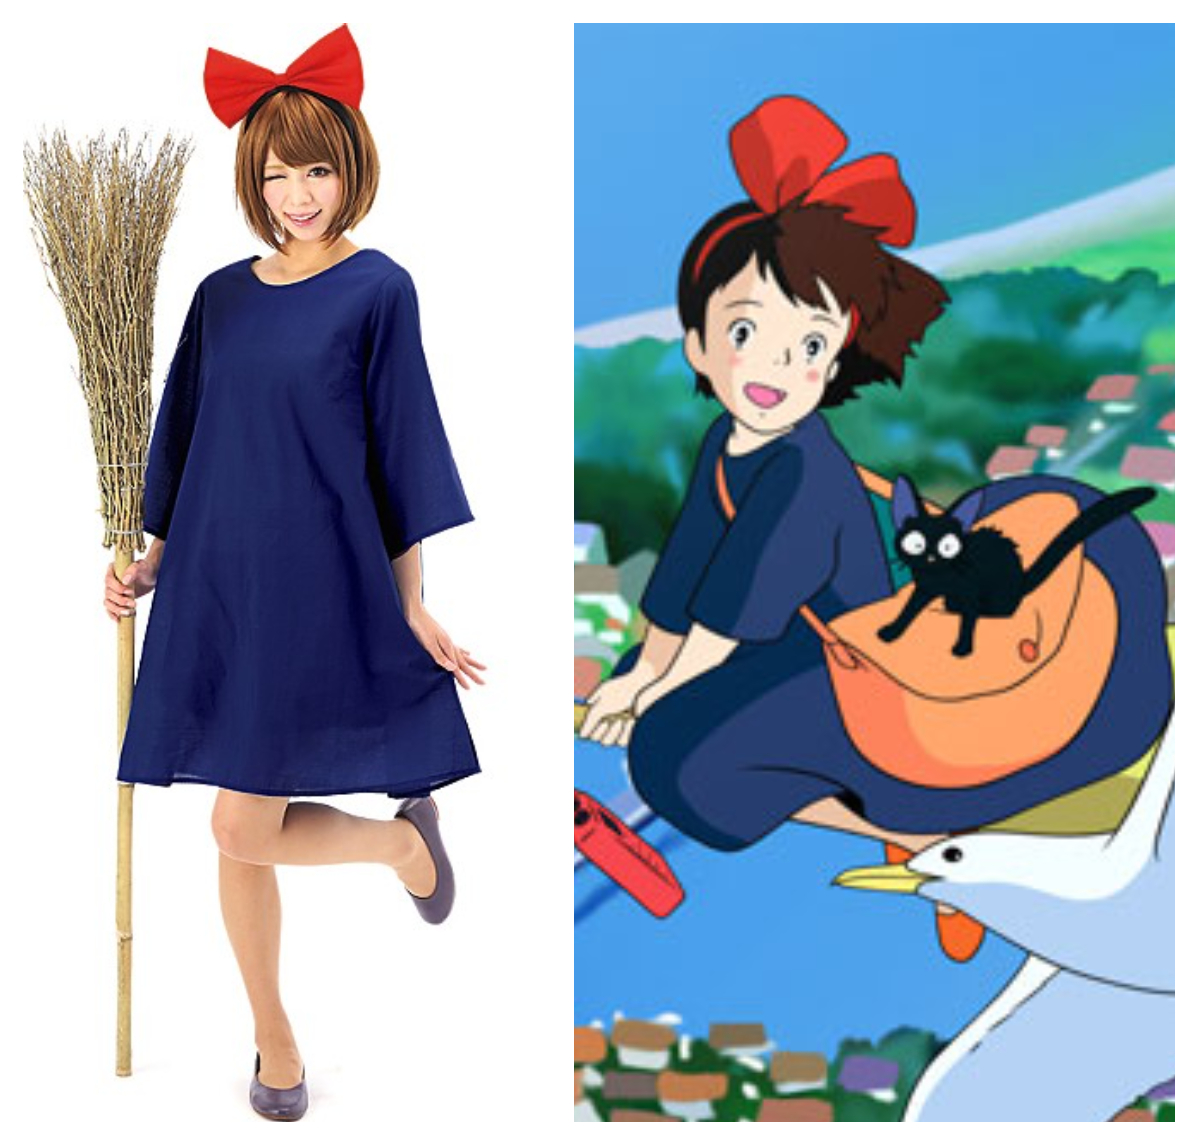 geek costume ideas Kiki the witch